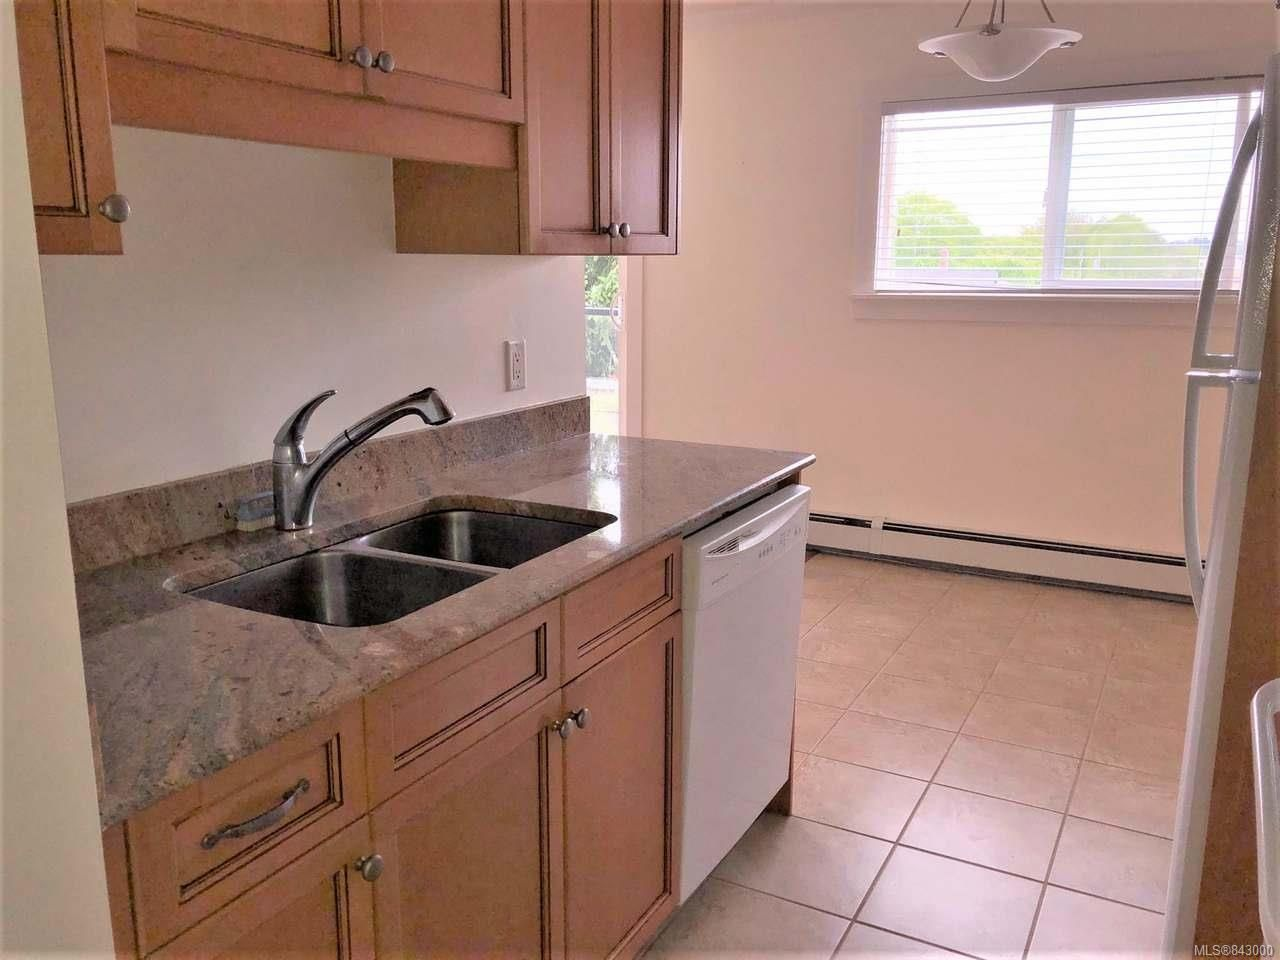 Photo 18: Photos: 405 255 W Hirst Ave in PARKSVILLE: PQ Parksville Condo for sale (Parksville/Qualicum)  : MLS®# 843000